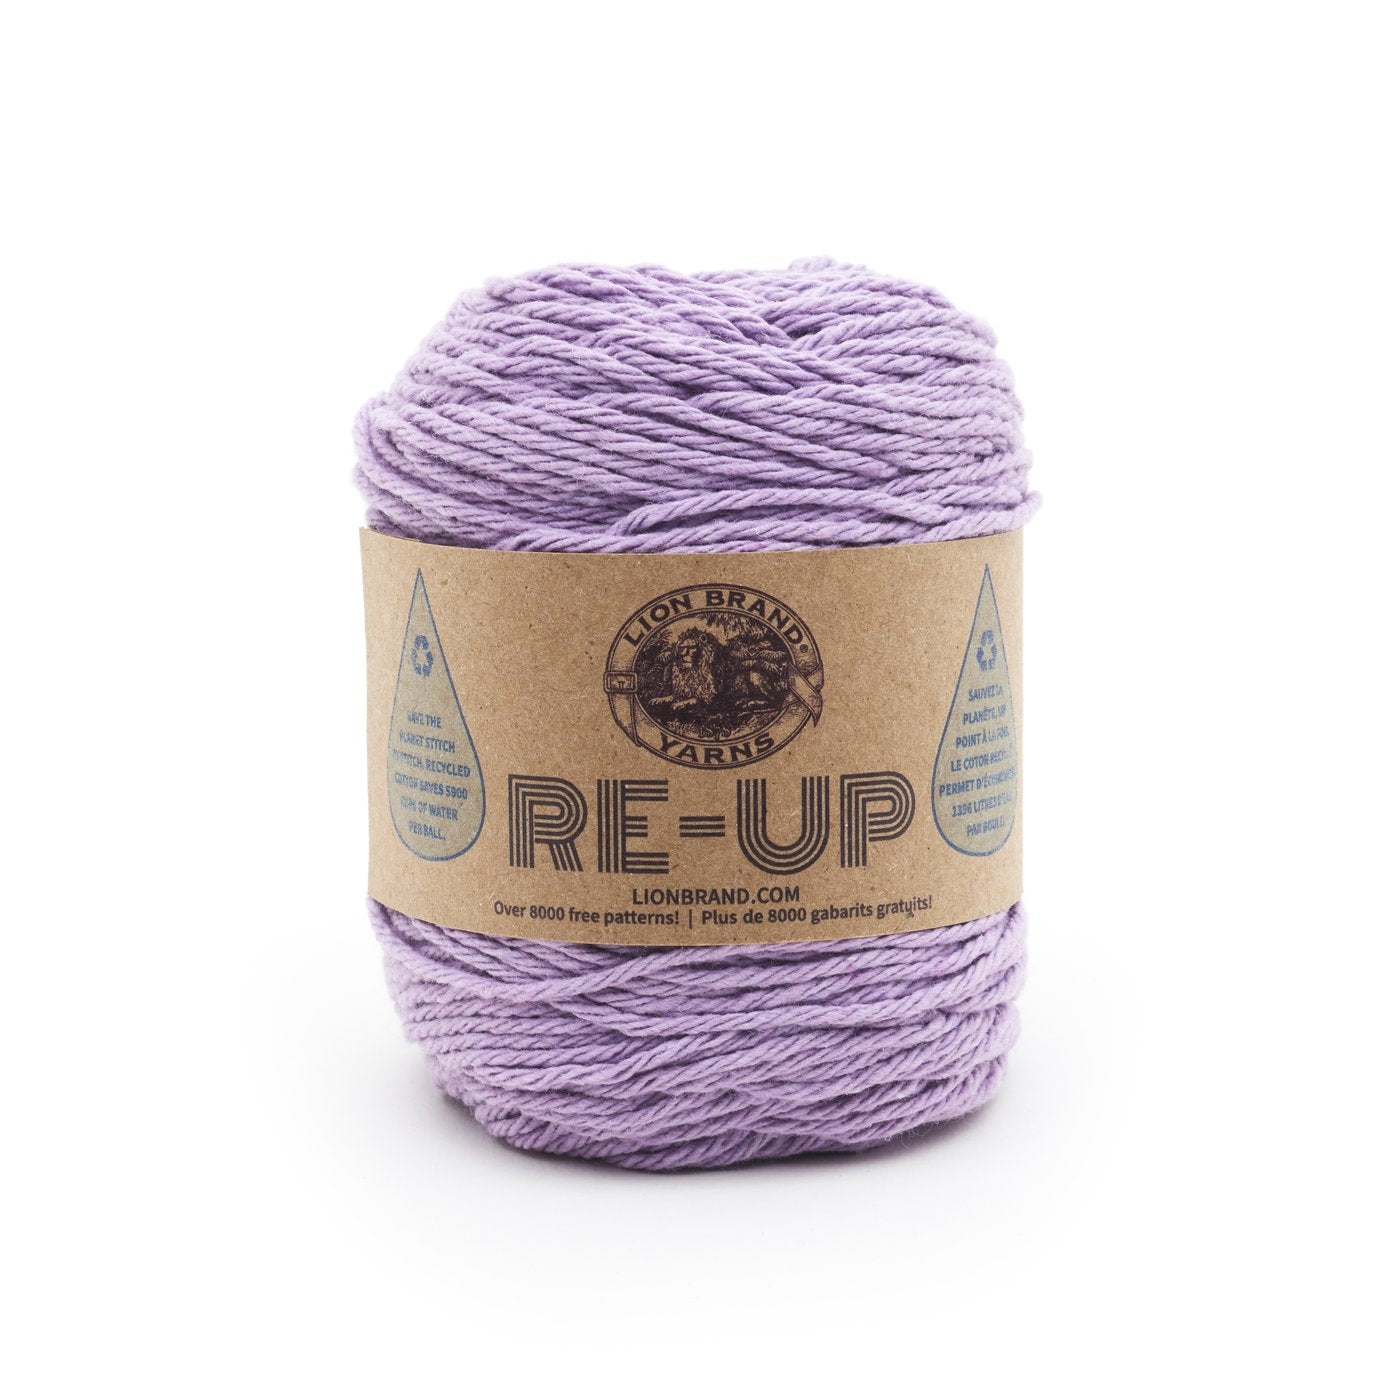 Lion Brand Re-Up in Lilac